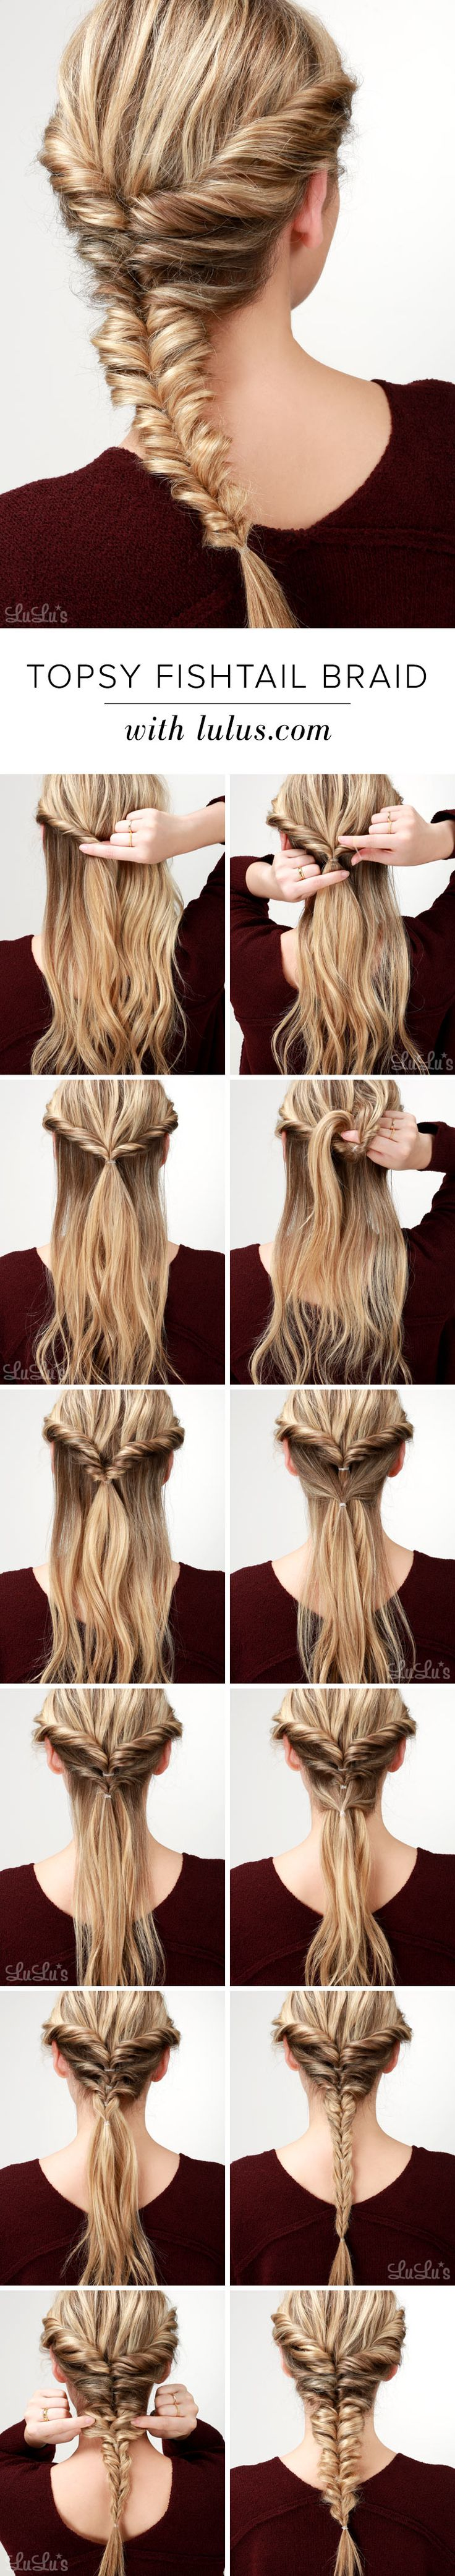 538 best Hairstyles of the Fine & Thin images on Pinterest